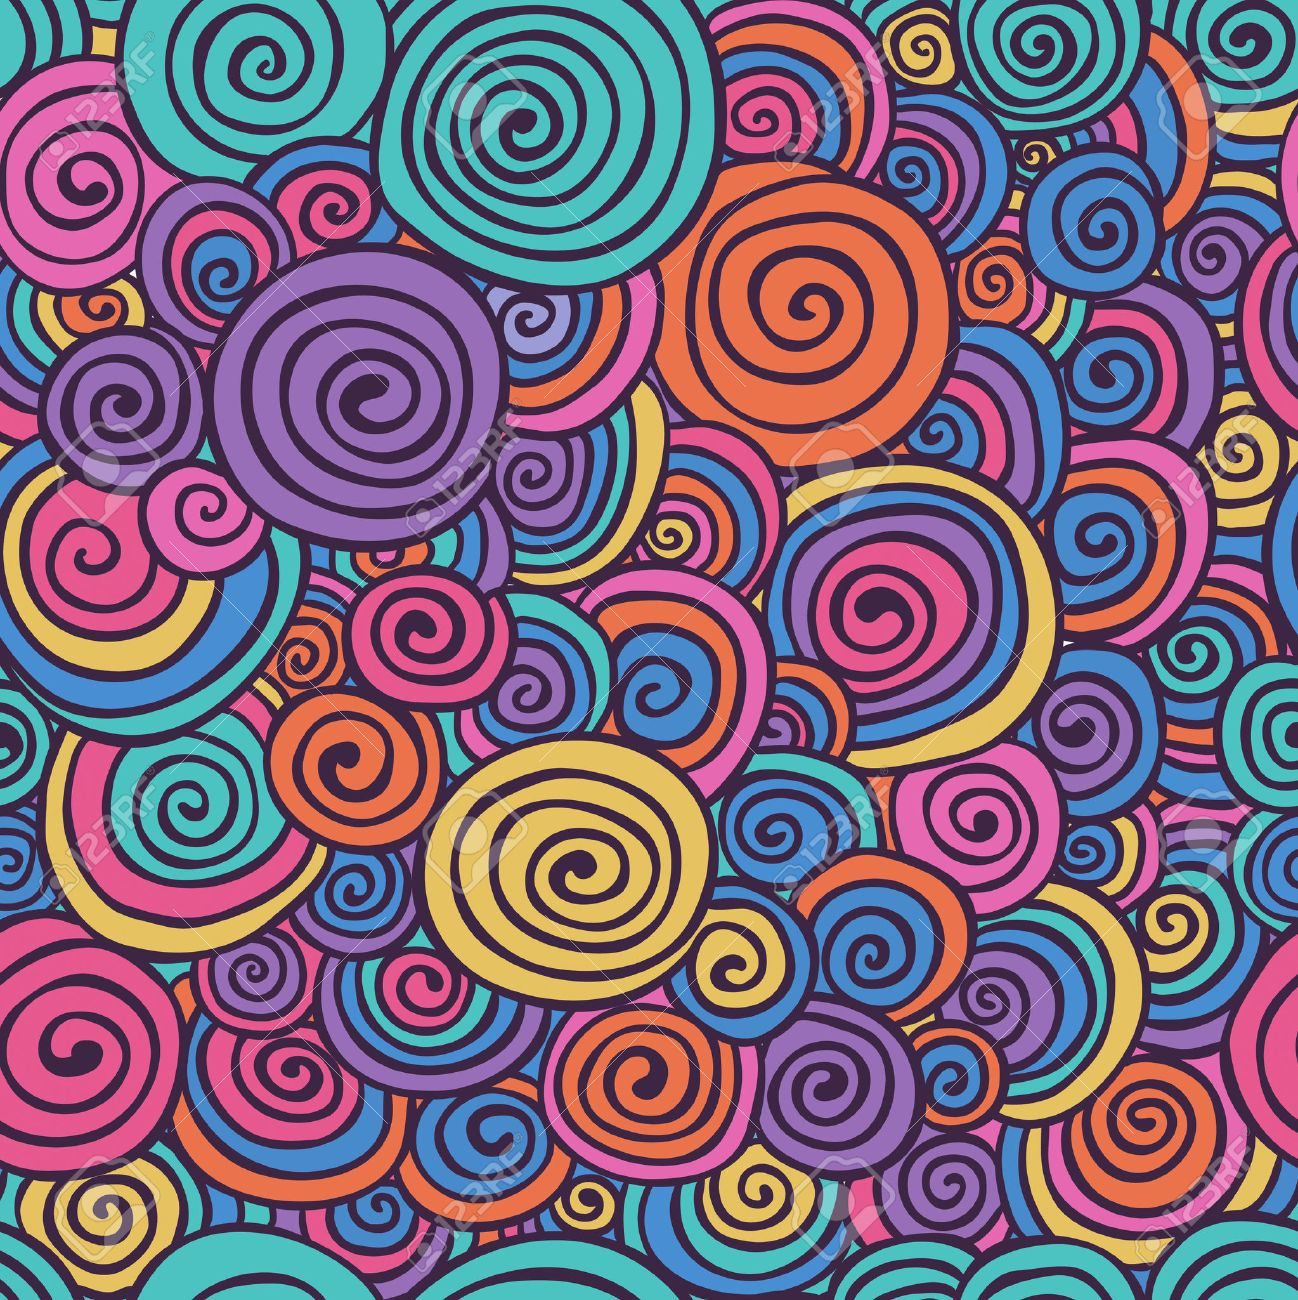 Abstract Colorful Hand Sketched Swirls Circles Seamless Background Pattern. Vector Illustration. Pattern Swatch. Hand Drawn Scribble Wavy Texture - 50212063